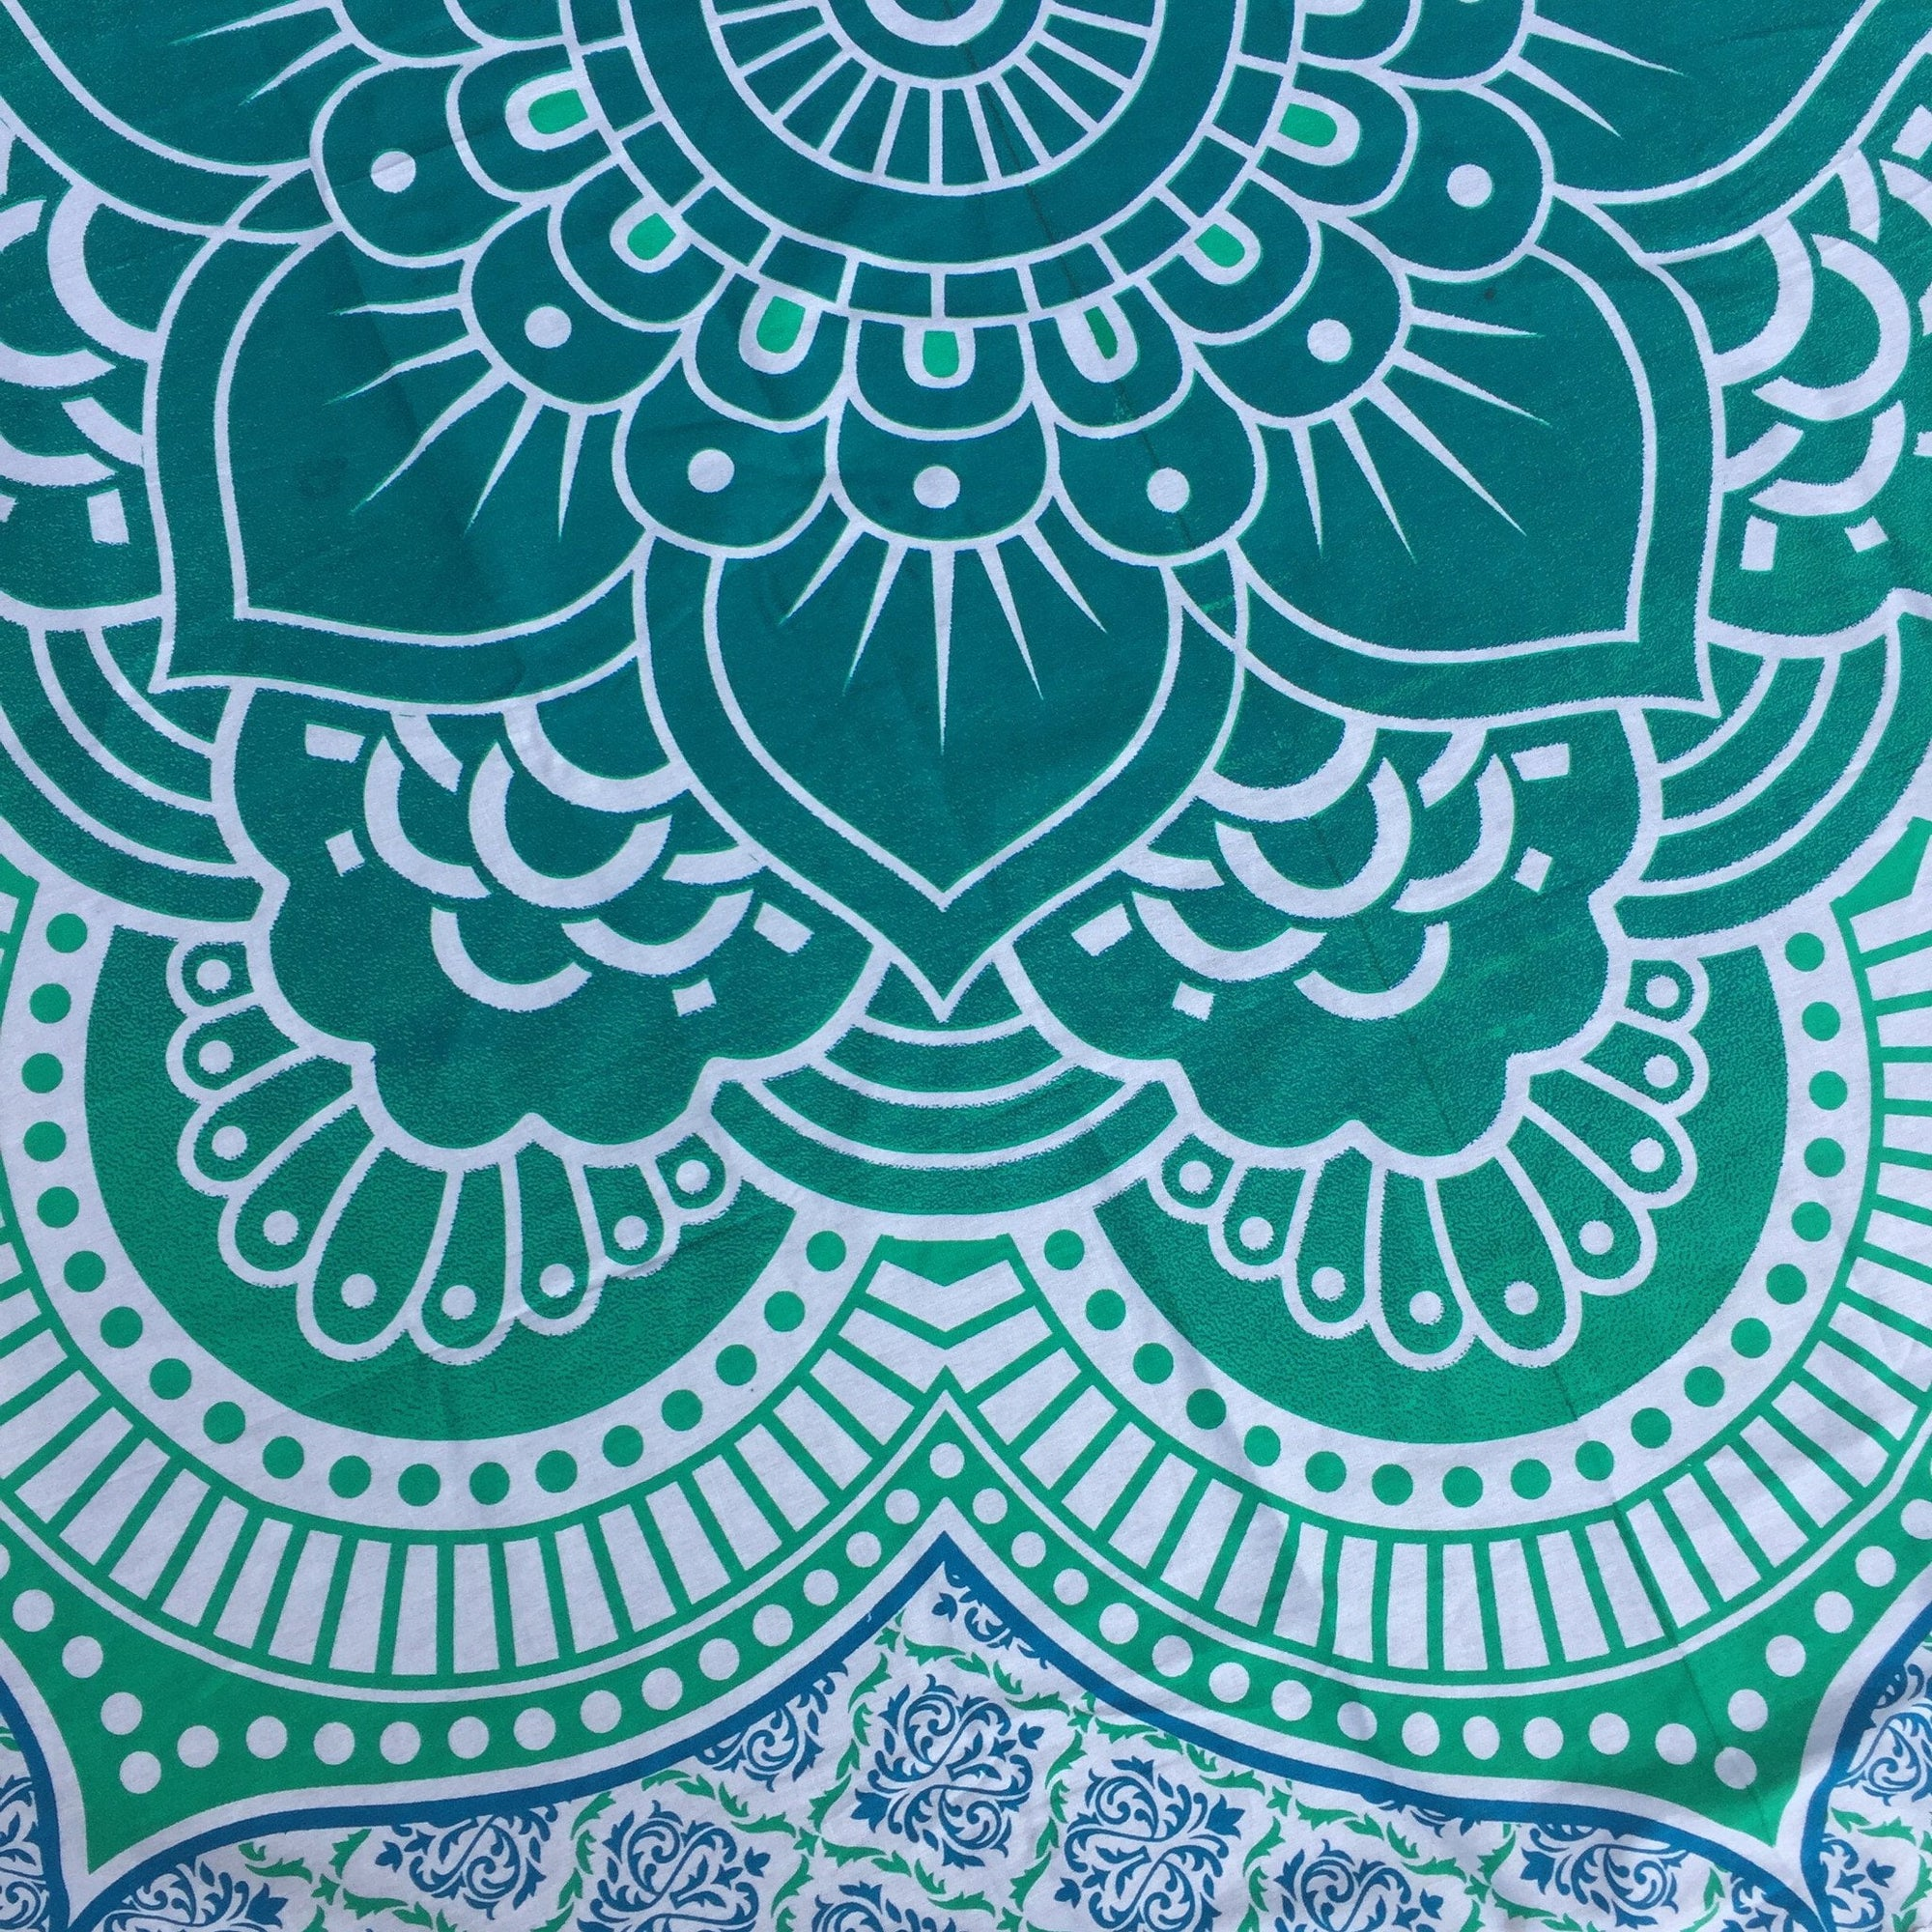 Mandala Tapestry - Teal Flower - Sparkle Rock Pop